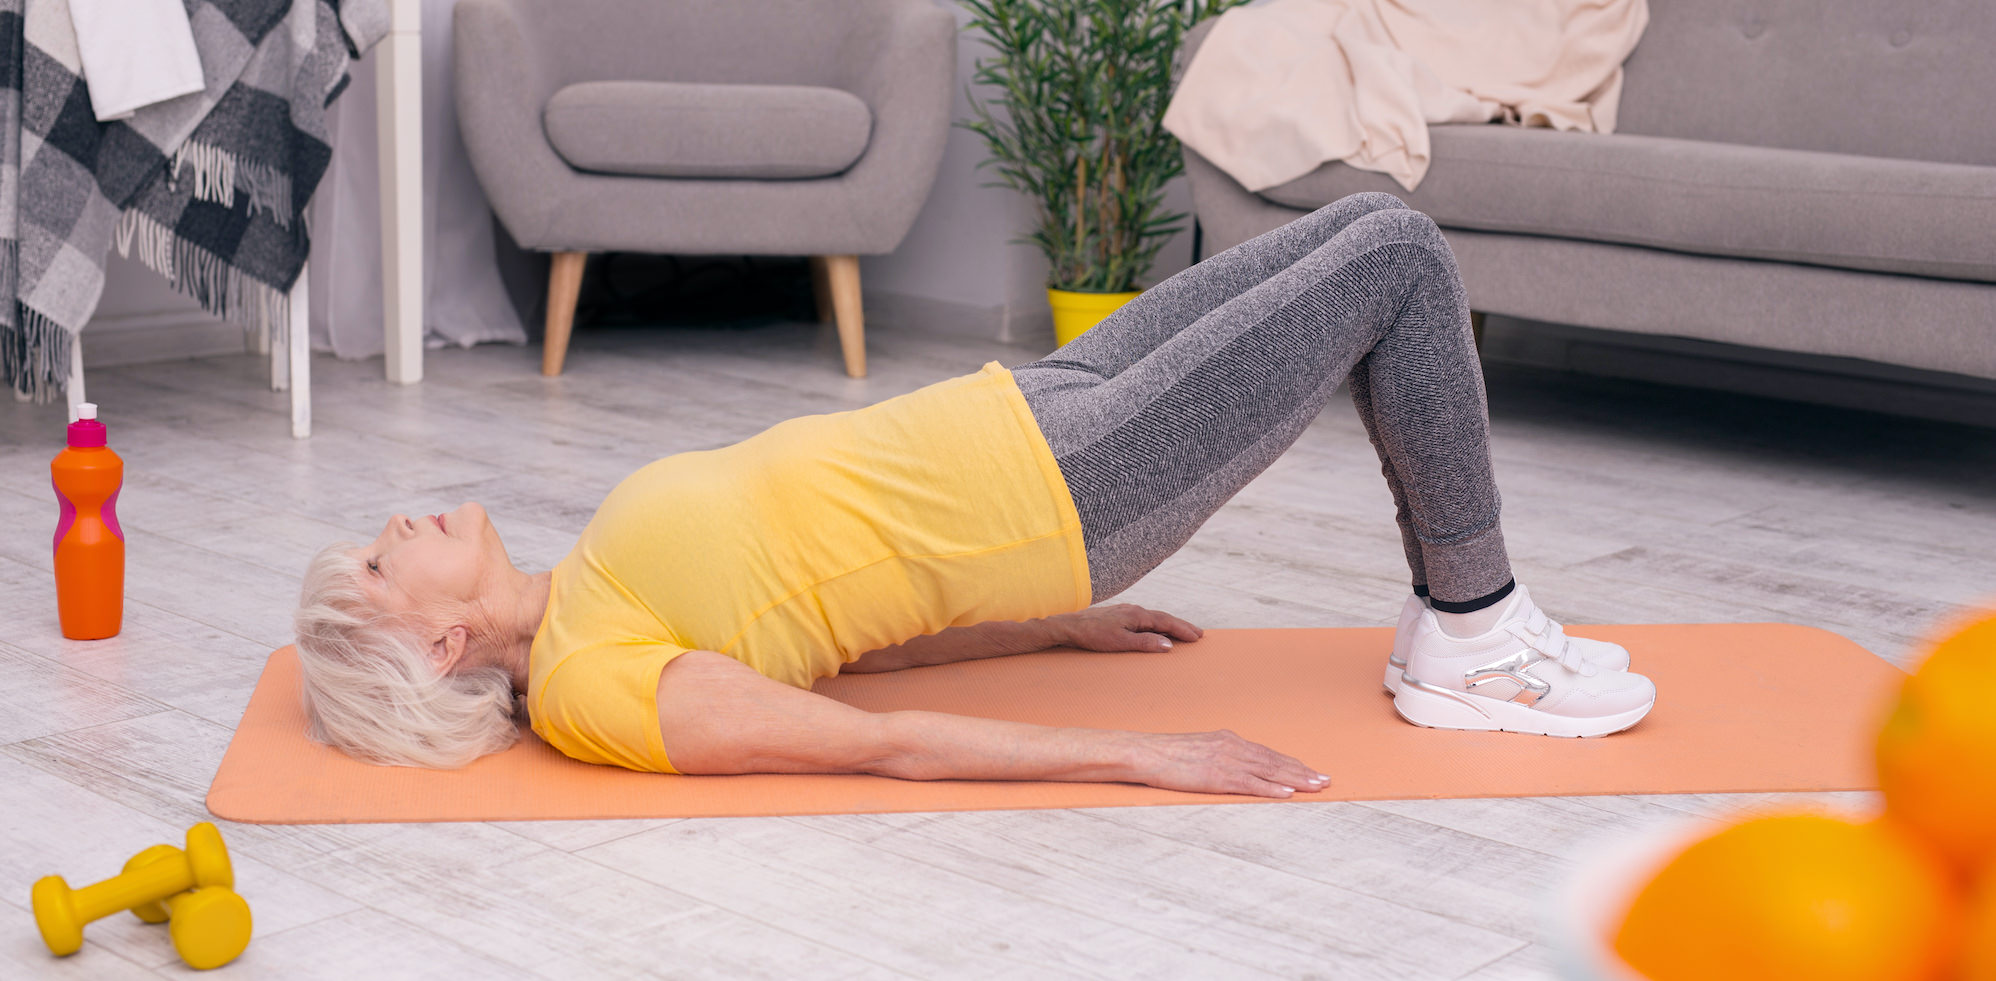 Performing pelvic lift exercise